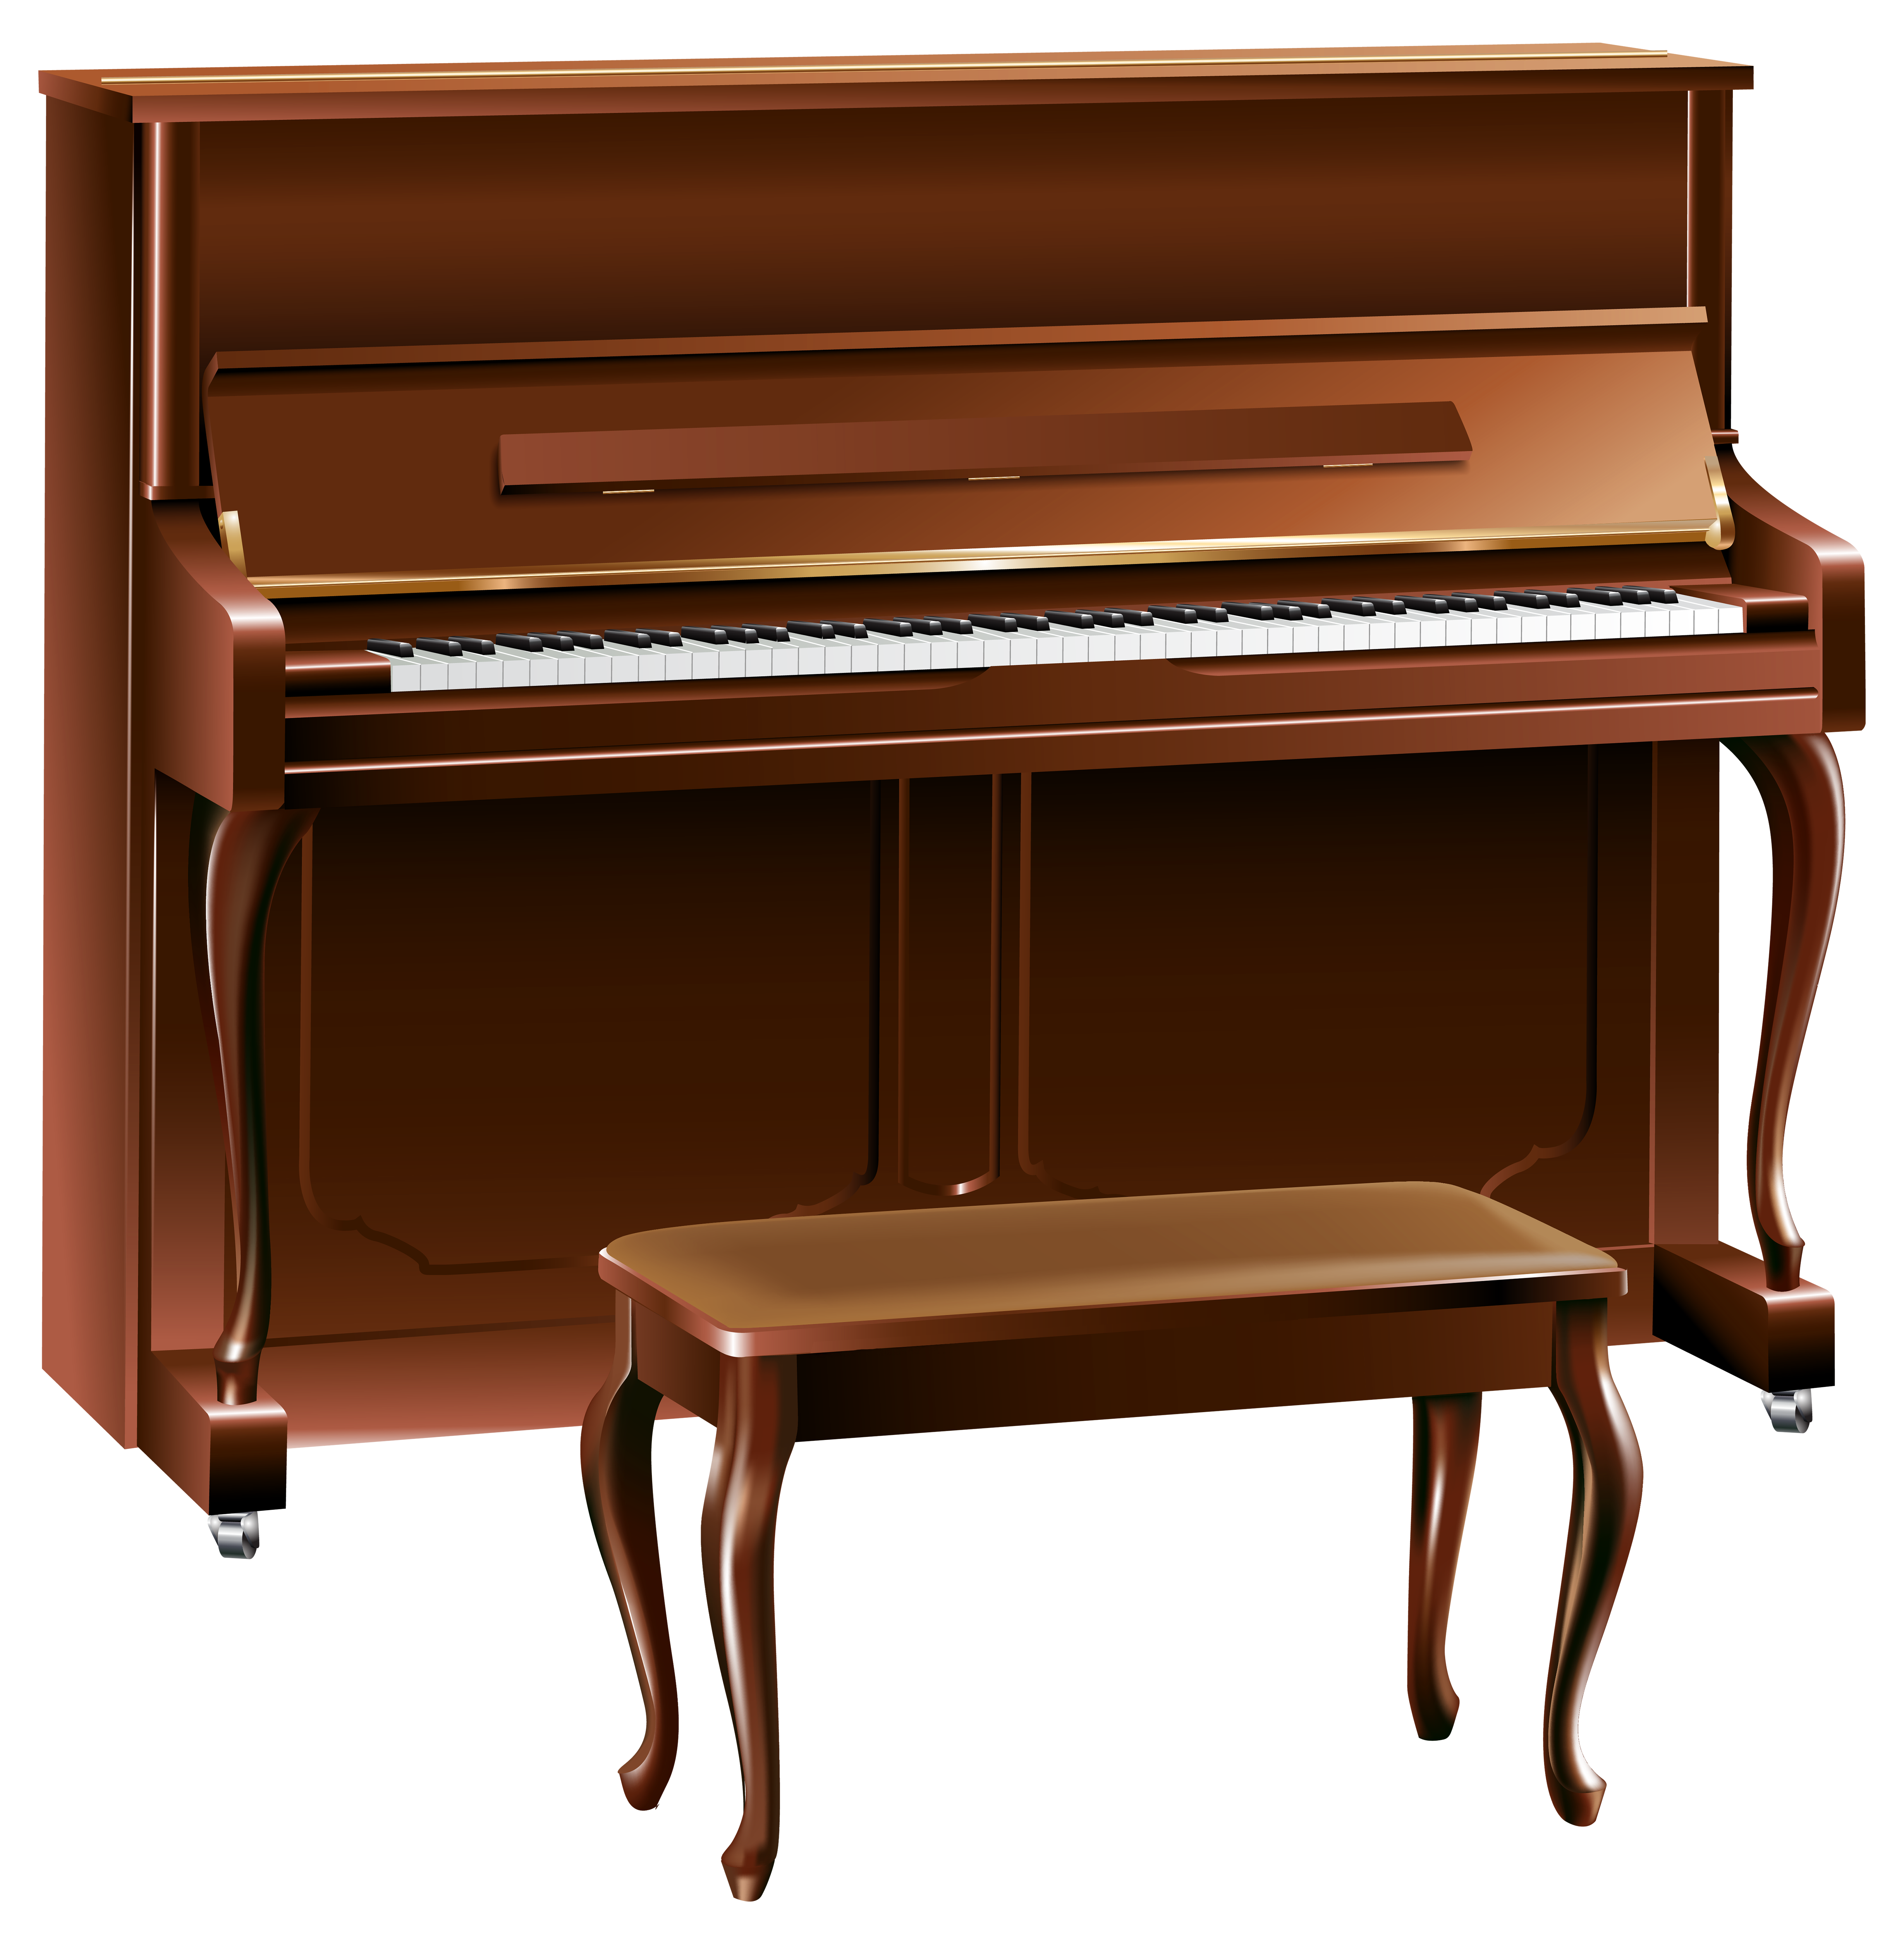 Piano clipart old piano. Upright drawing at getdrawings